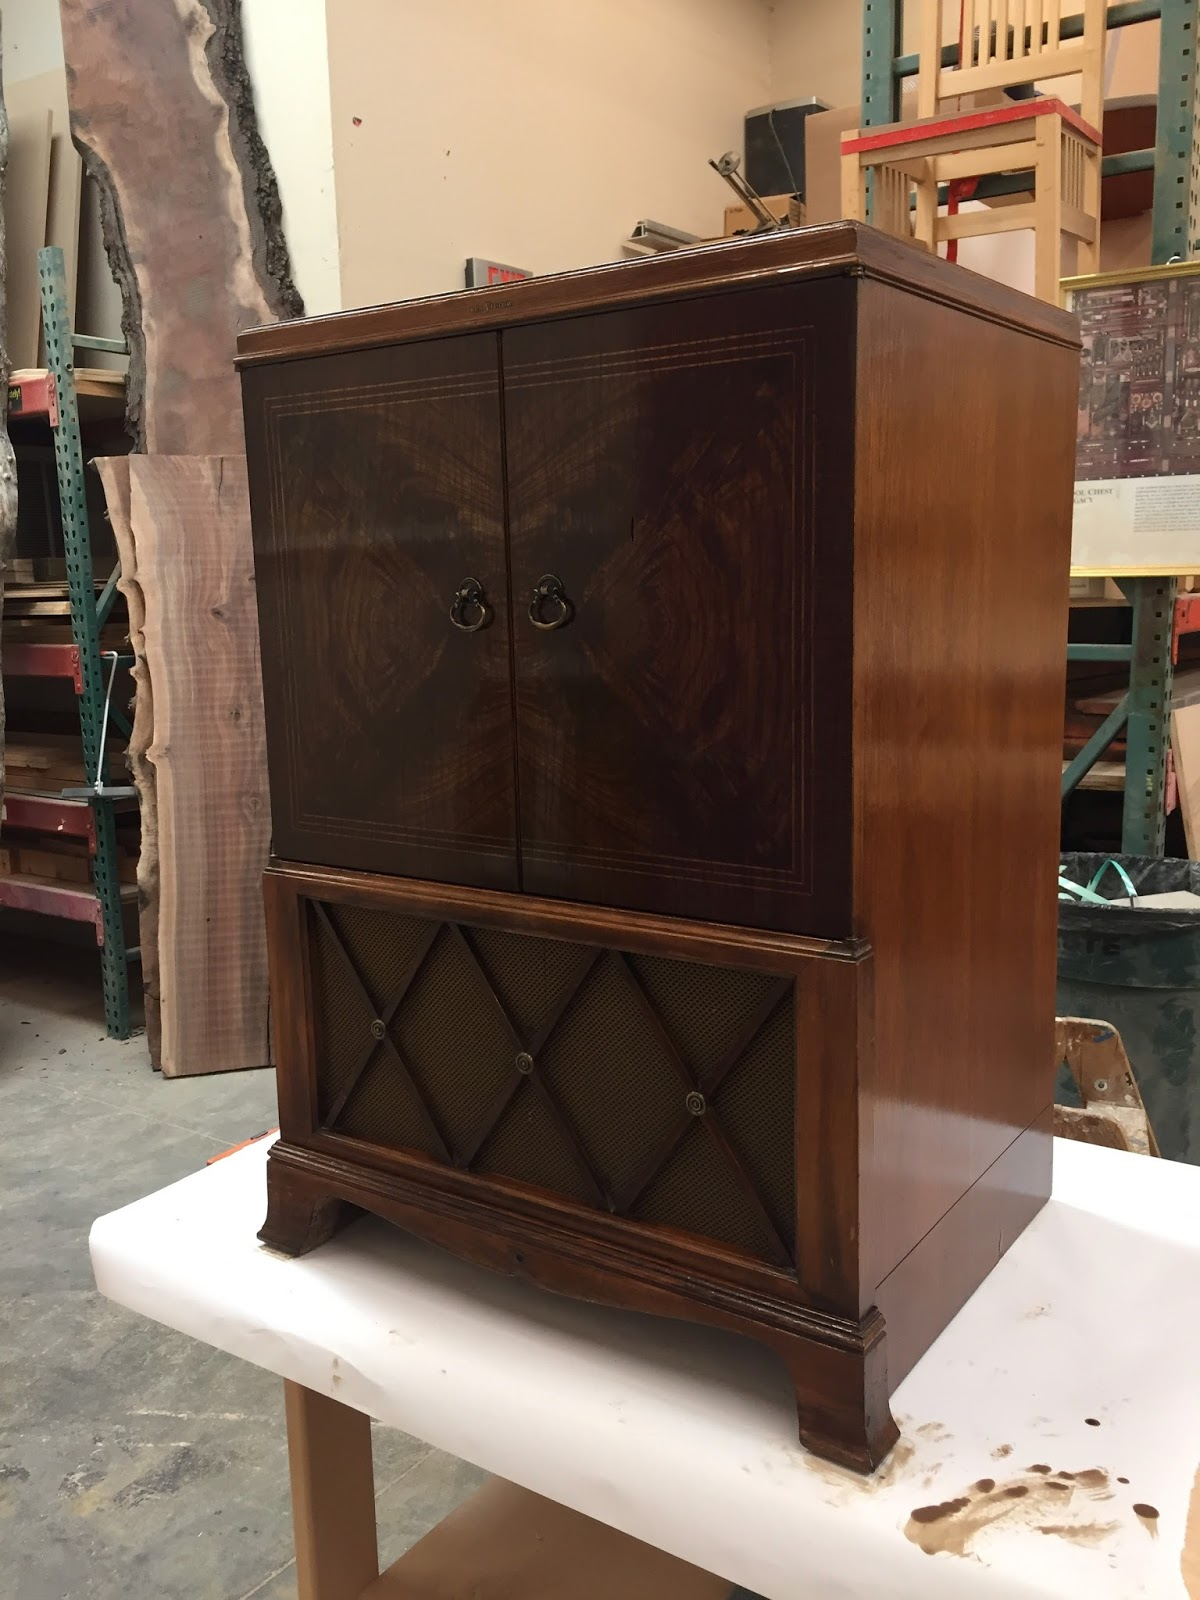 Lets Talk Wood A Quick Follow Up On The Old Rca Console Tv Cabinet